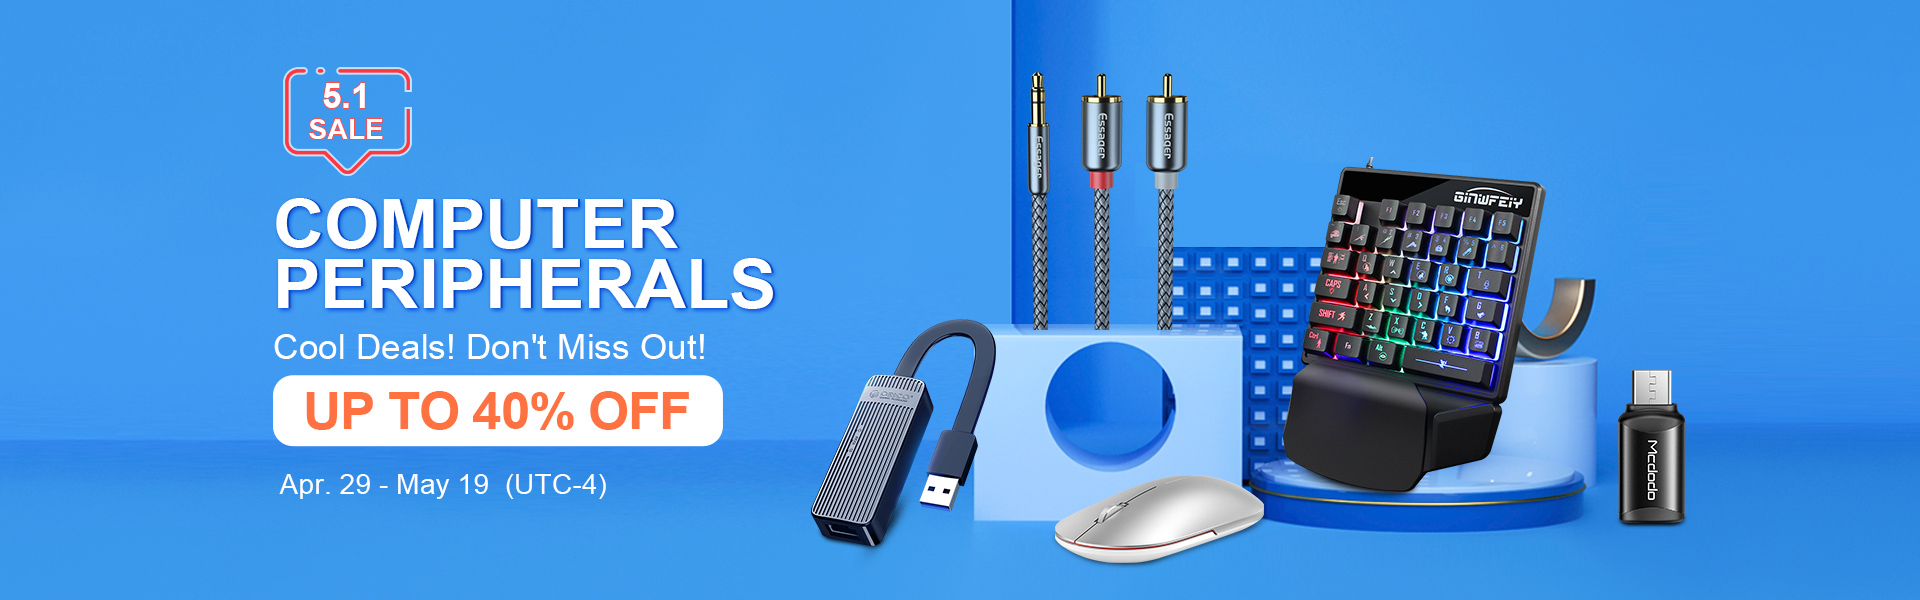 Up to 60% off Computer Peripherals